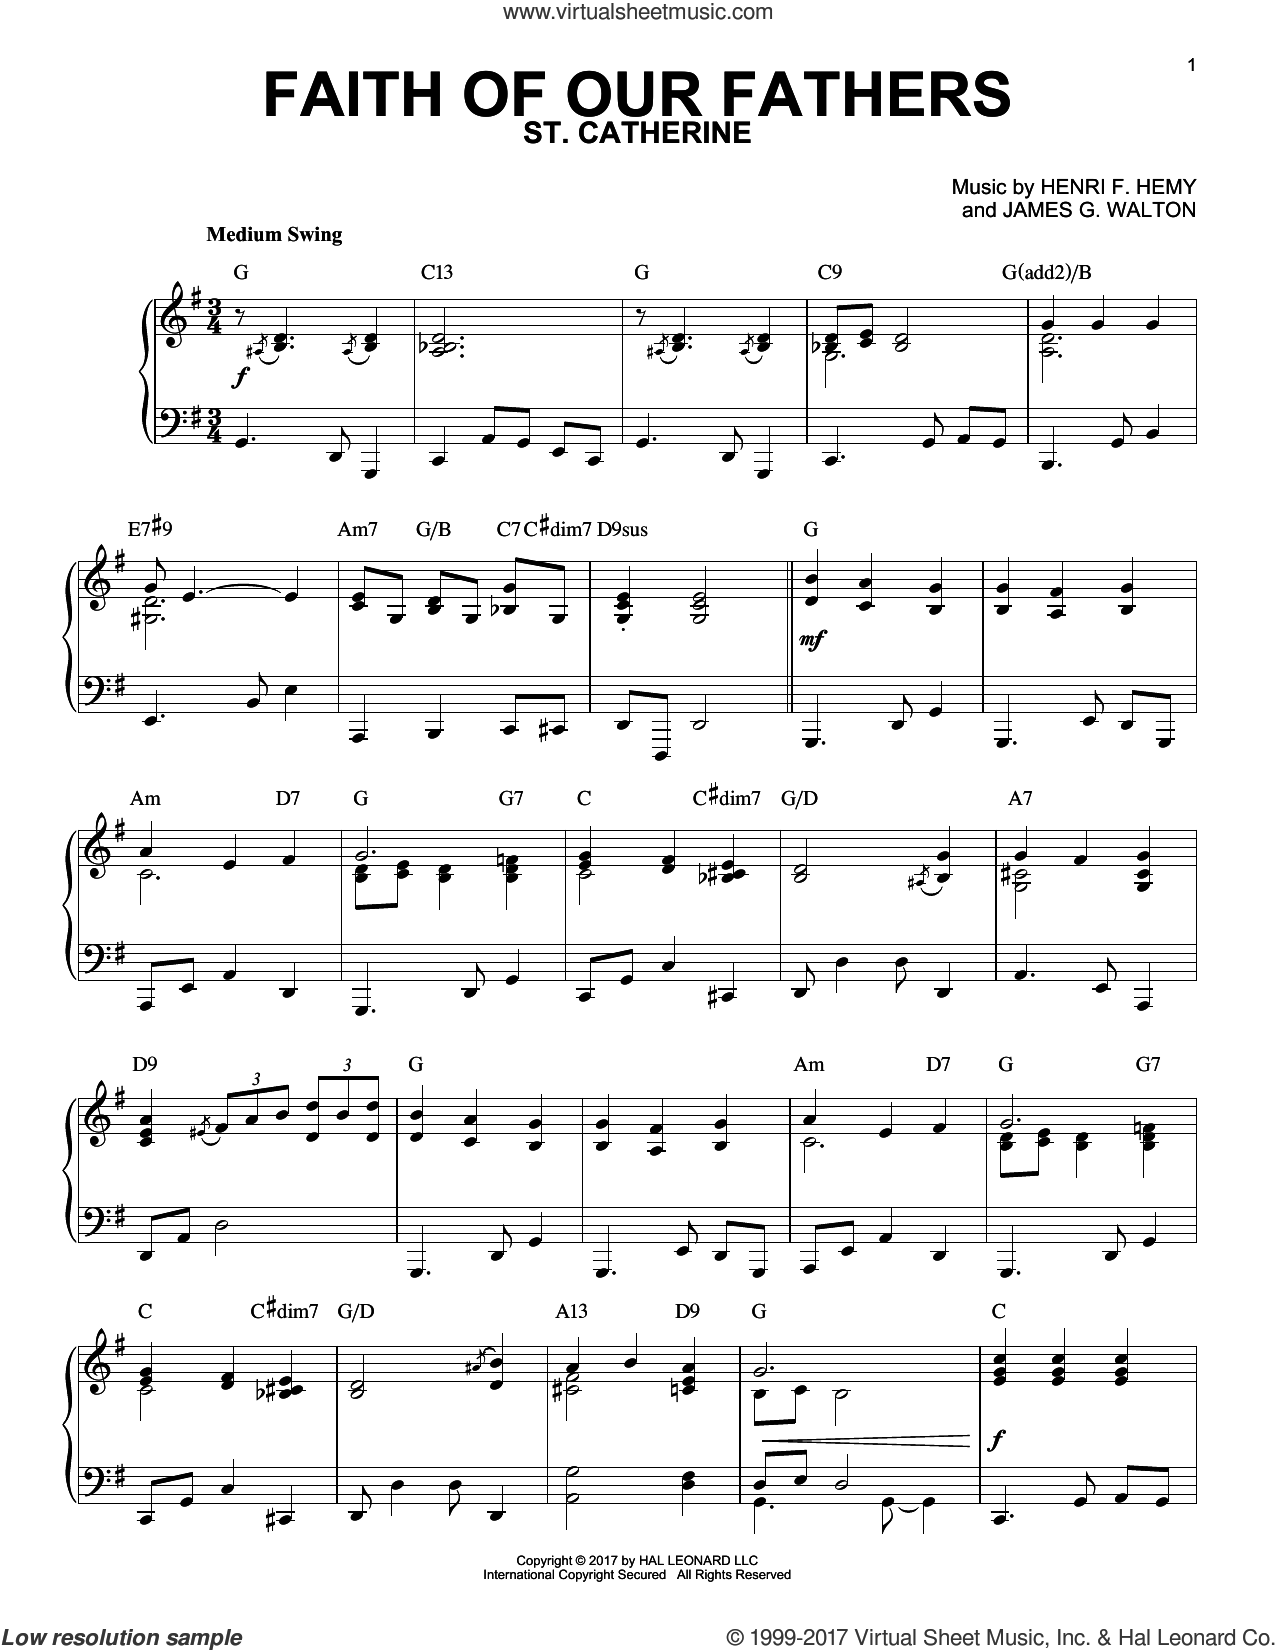 Faith Of Our Fathers sheet music for piano solo by Henri F. Hemy, Frederick William Faber and James G. Walton, intermediate skill level